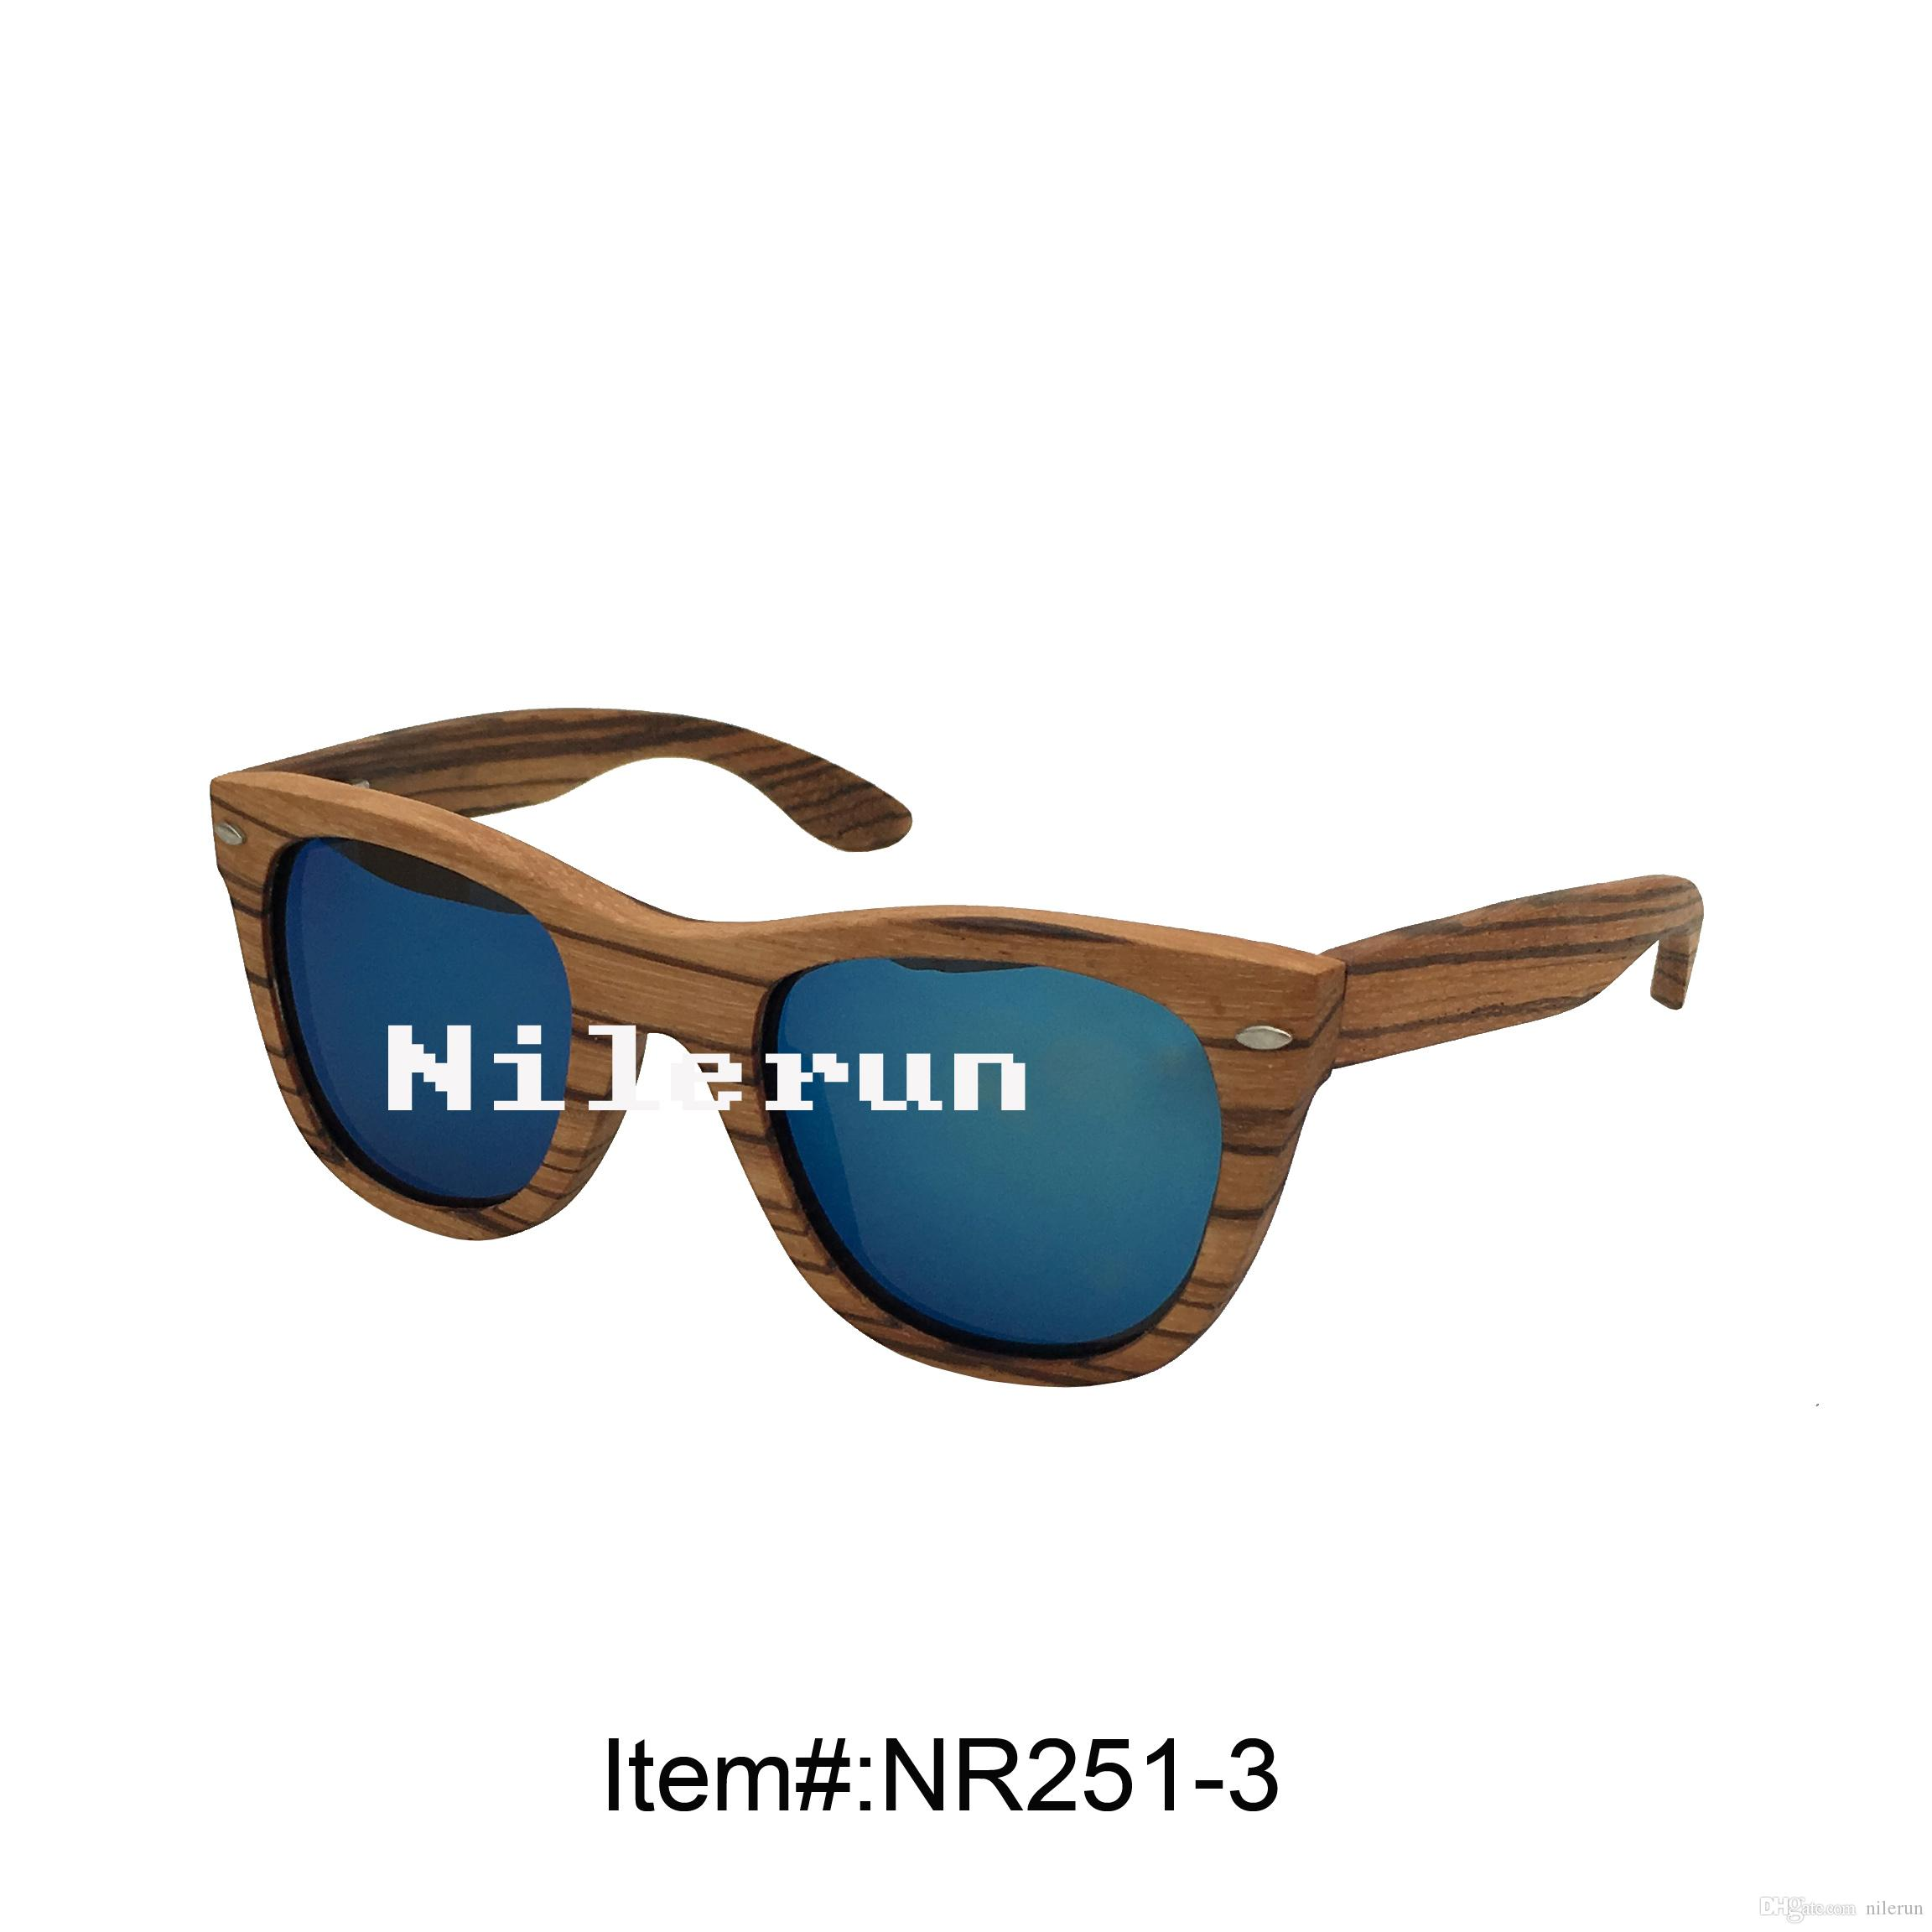 b8df7cac5f Luxury Blue Lenses Zebrawood Sunglasses with Metal Decorating Pins Luxury Wooden  Sunglasses Blue Lens Sunglasses Mirror Blue Polarized Sunglasses Online ...